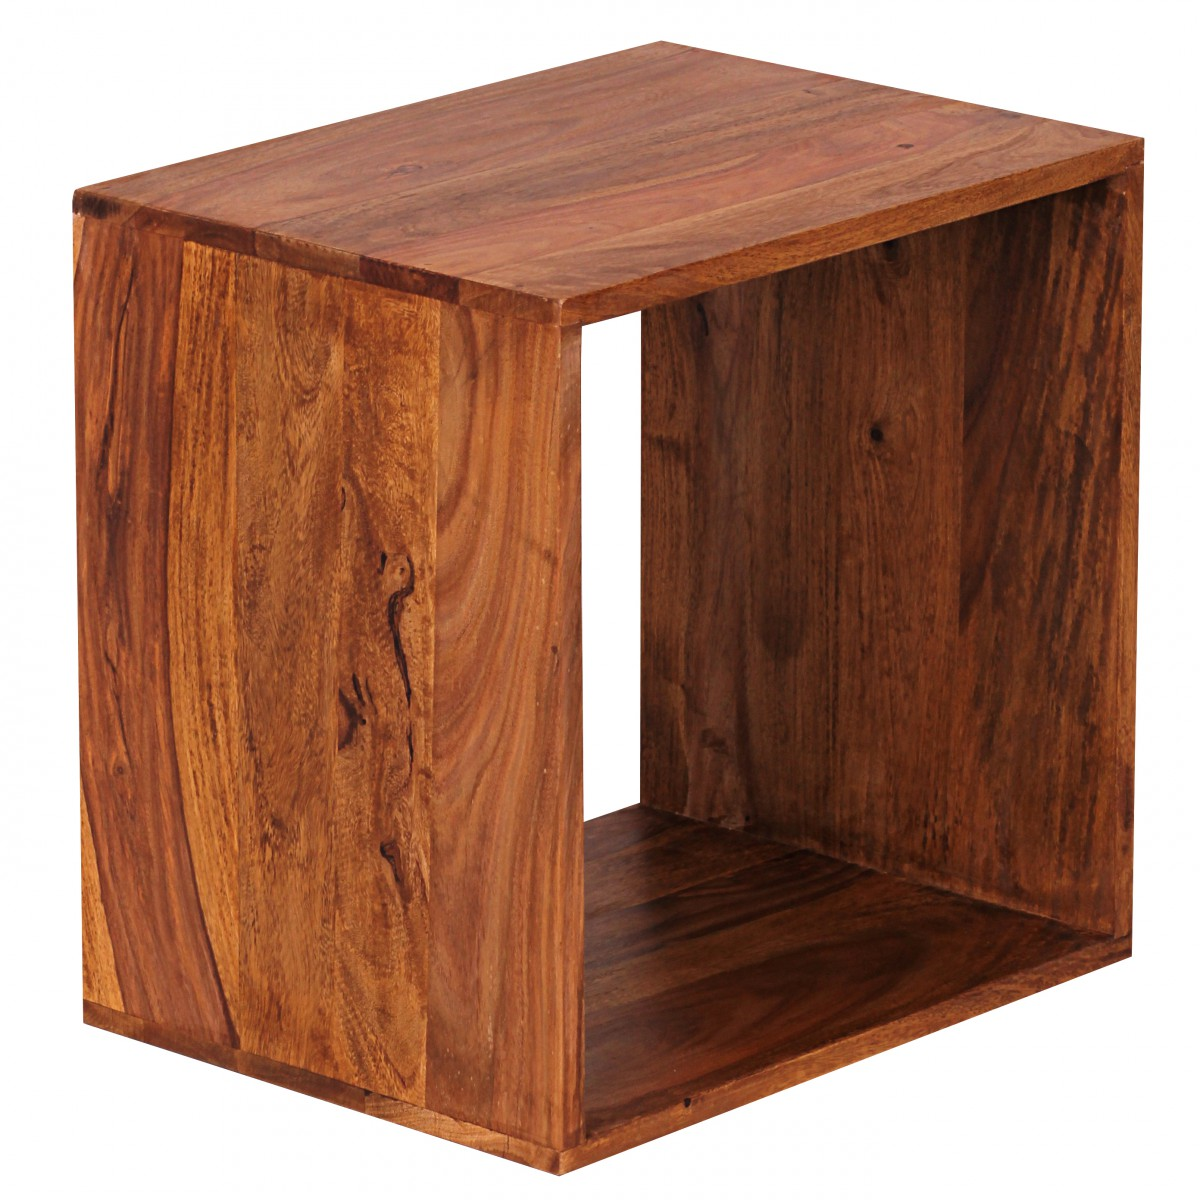 wohnling solid wood sheesham cube shelf 43 5 x 43 5 x 33 cm cube new ebay. Black Bedroom Furniture Sets. Home Design Ideas